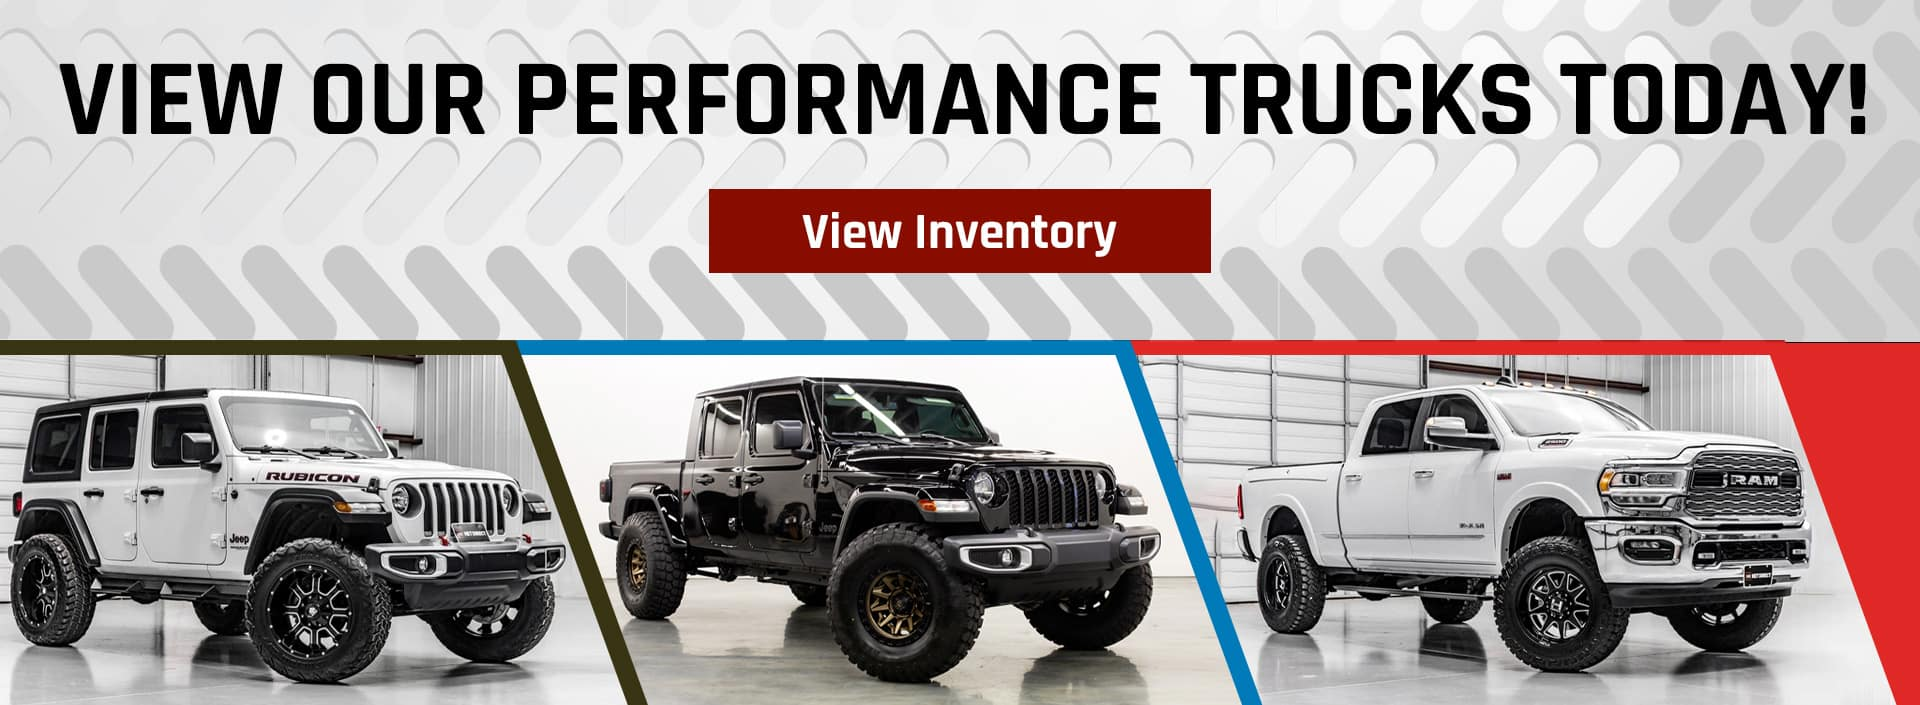 View Our Performance Trucks Today!